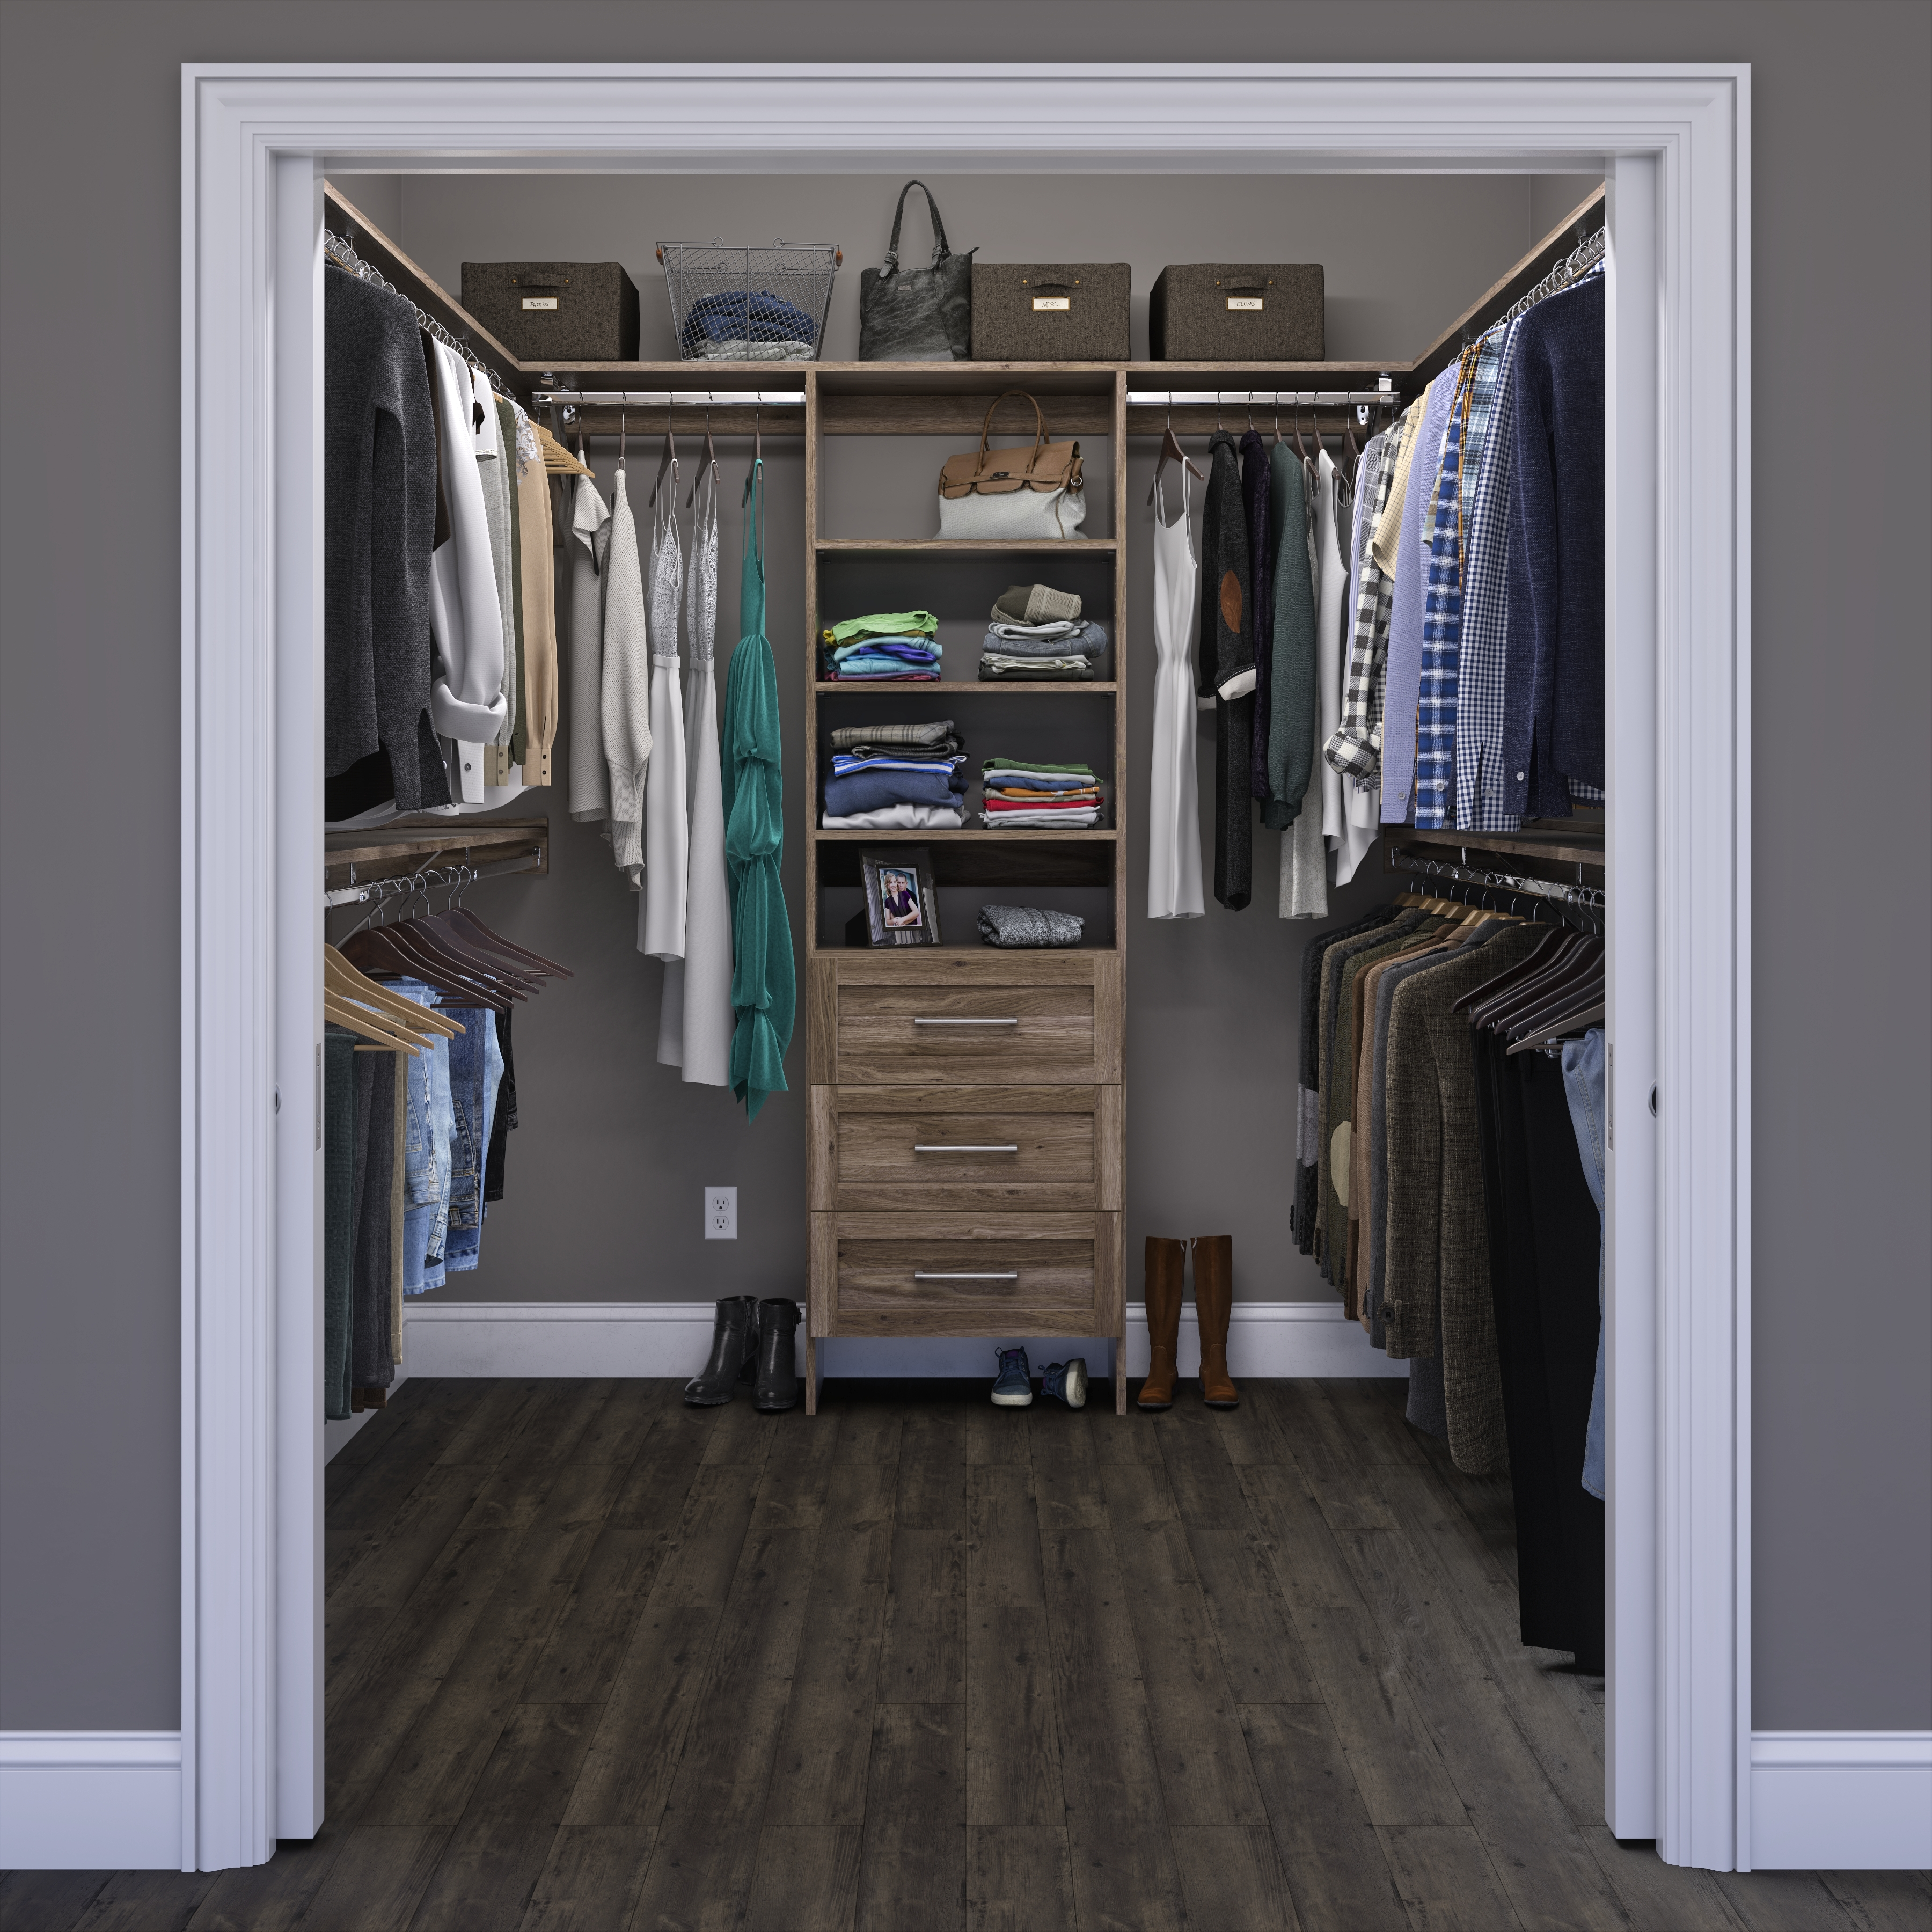 Grooved Closet Shelving - Walk in - Salt Oak